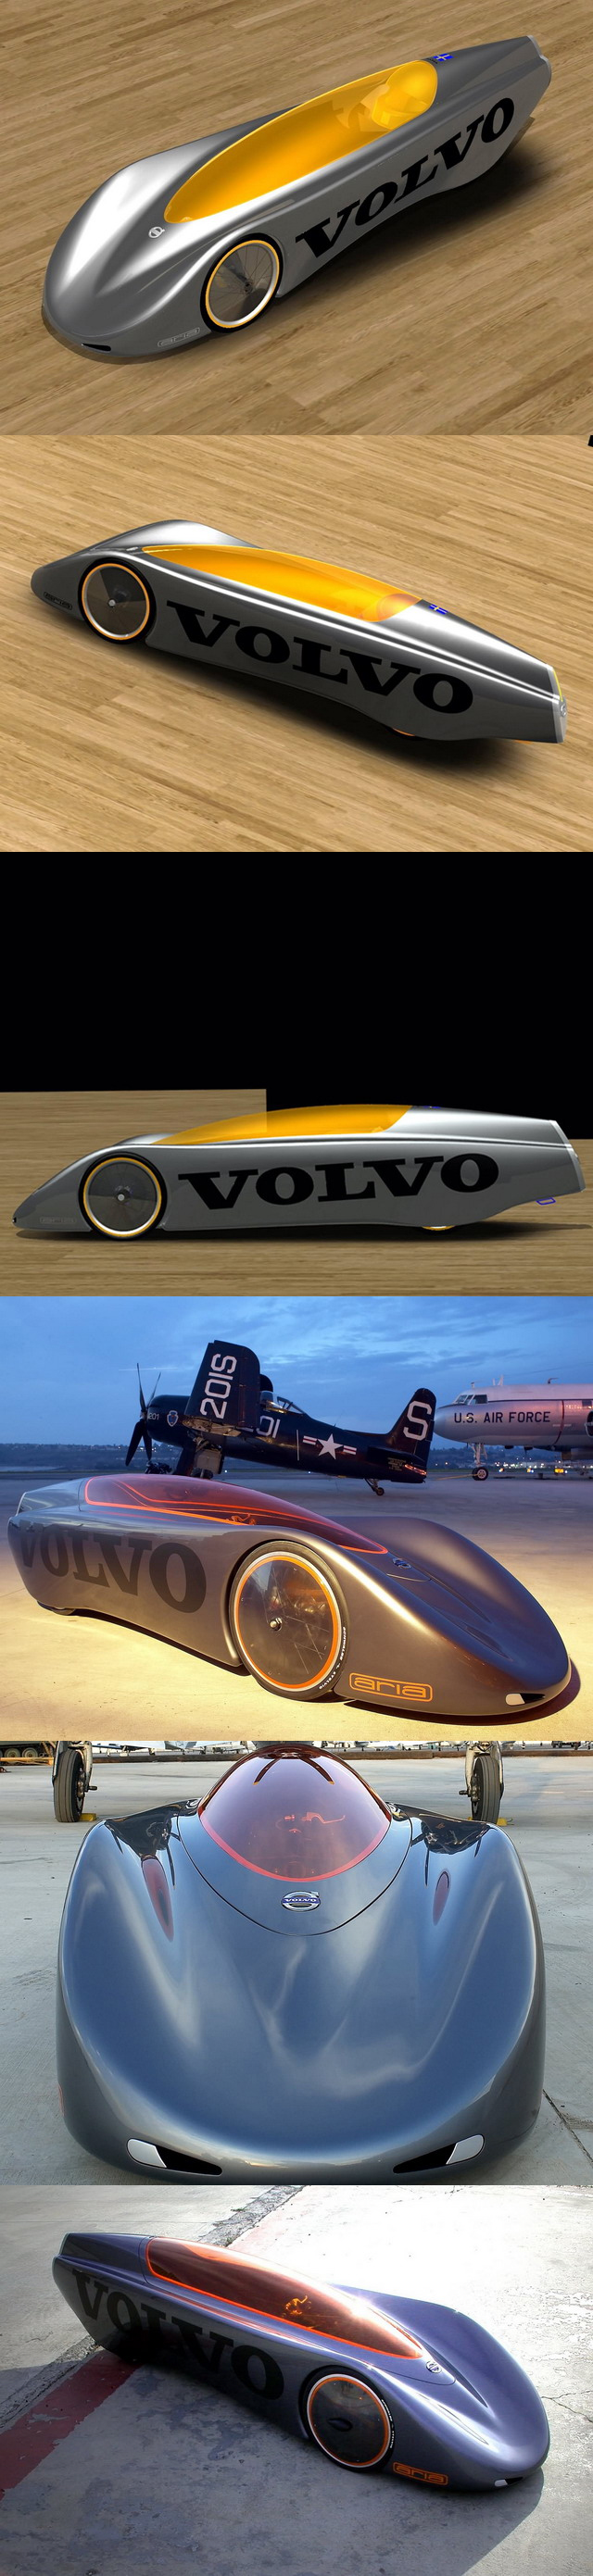 Volvo extreme gravity car concept 2005 from http www conceptcar